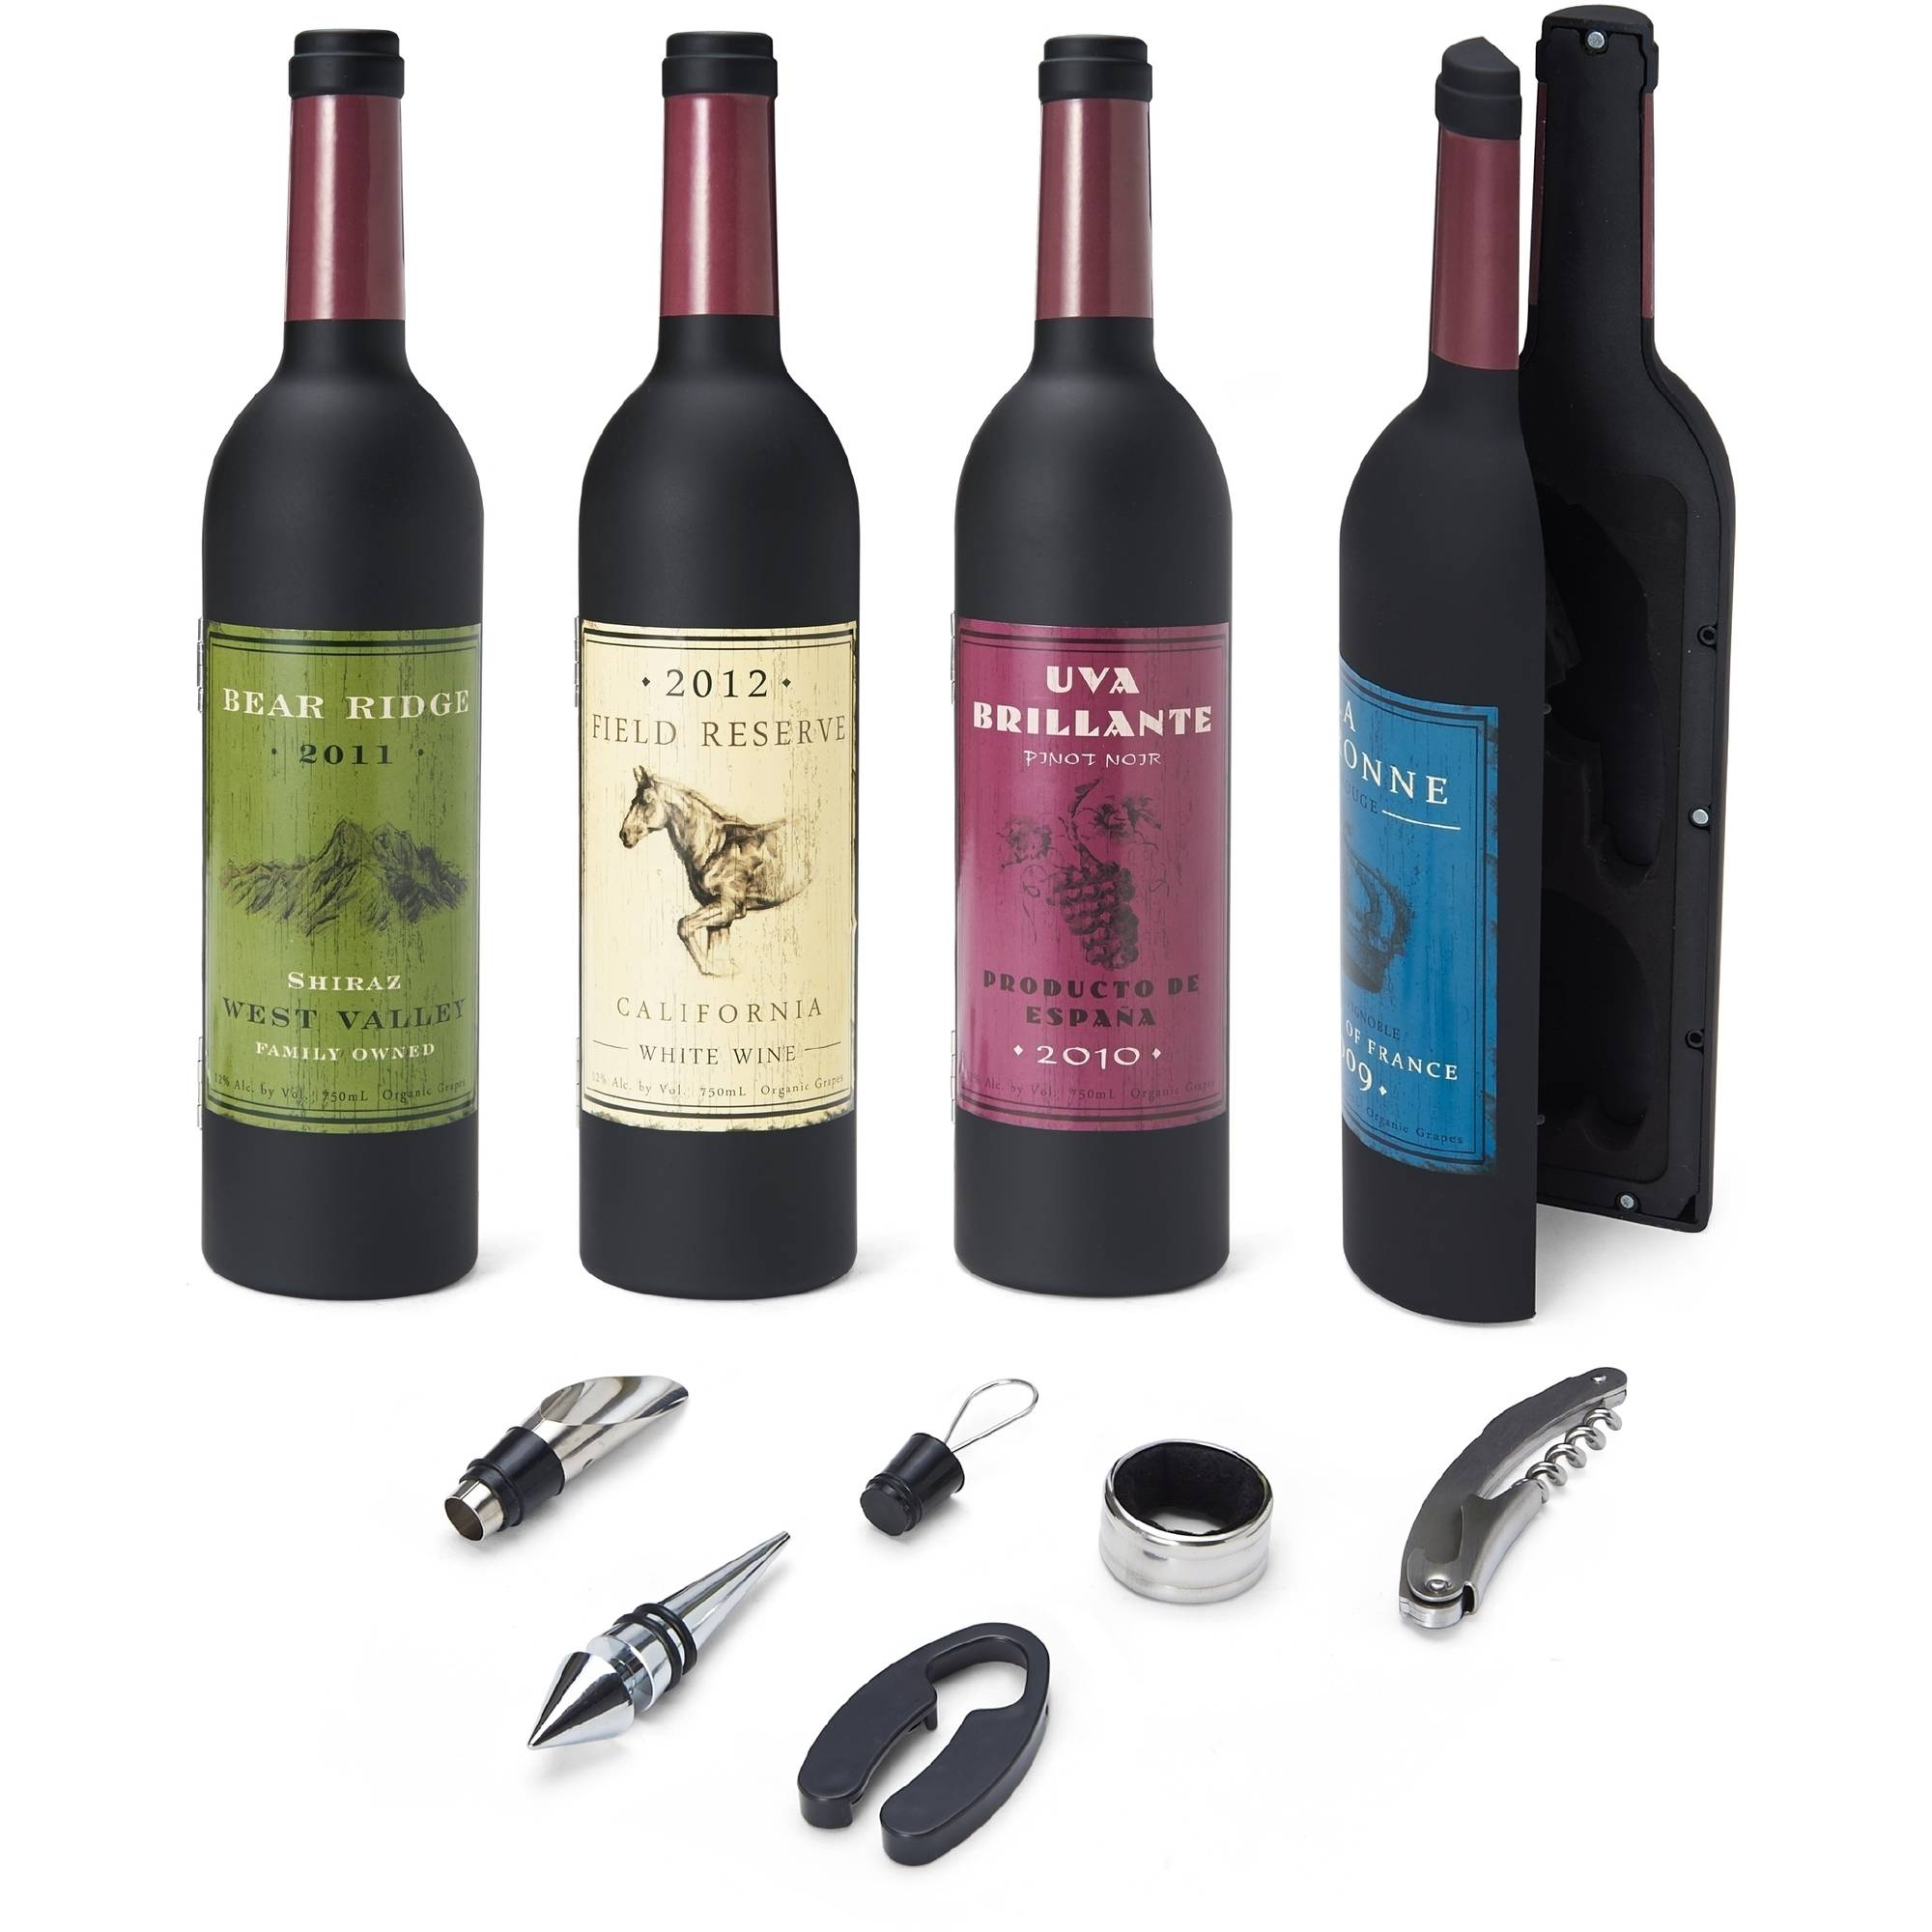 Elements 5-Piece Wine Set in Wine Bottle